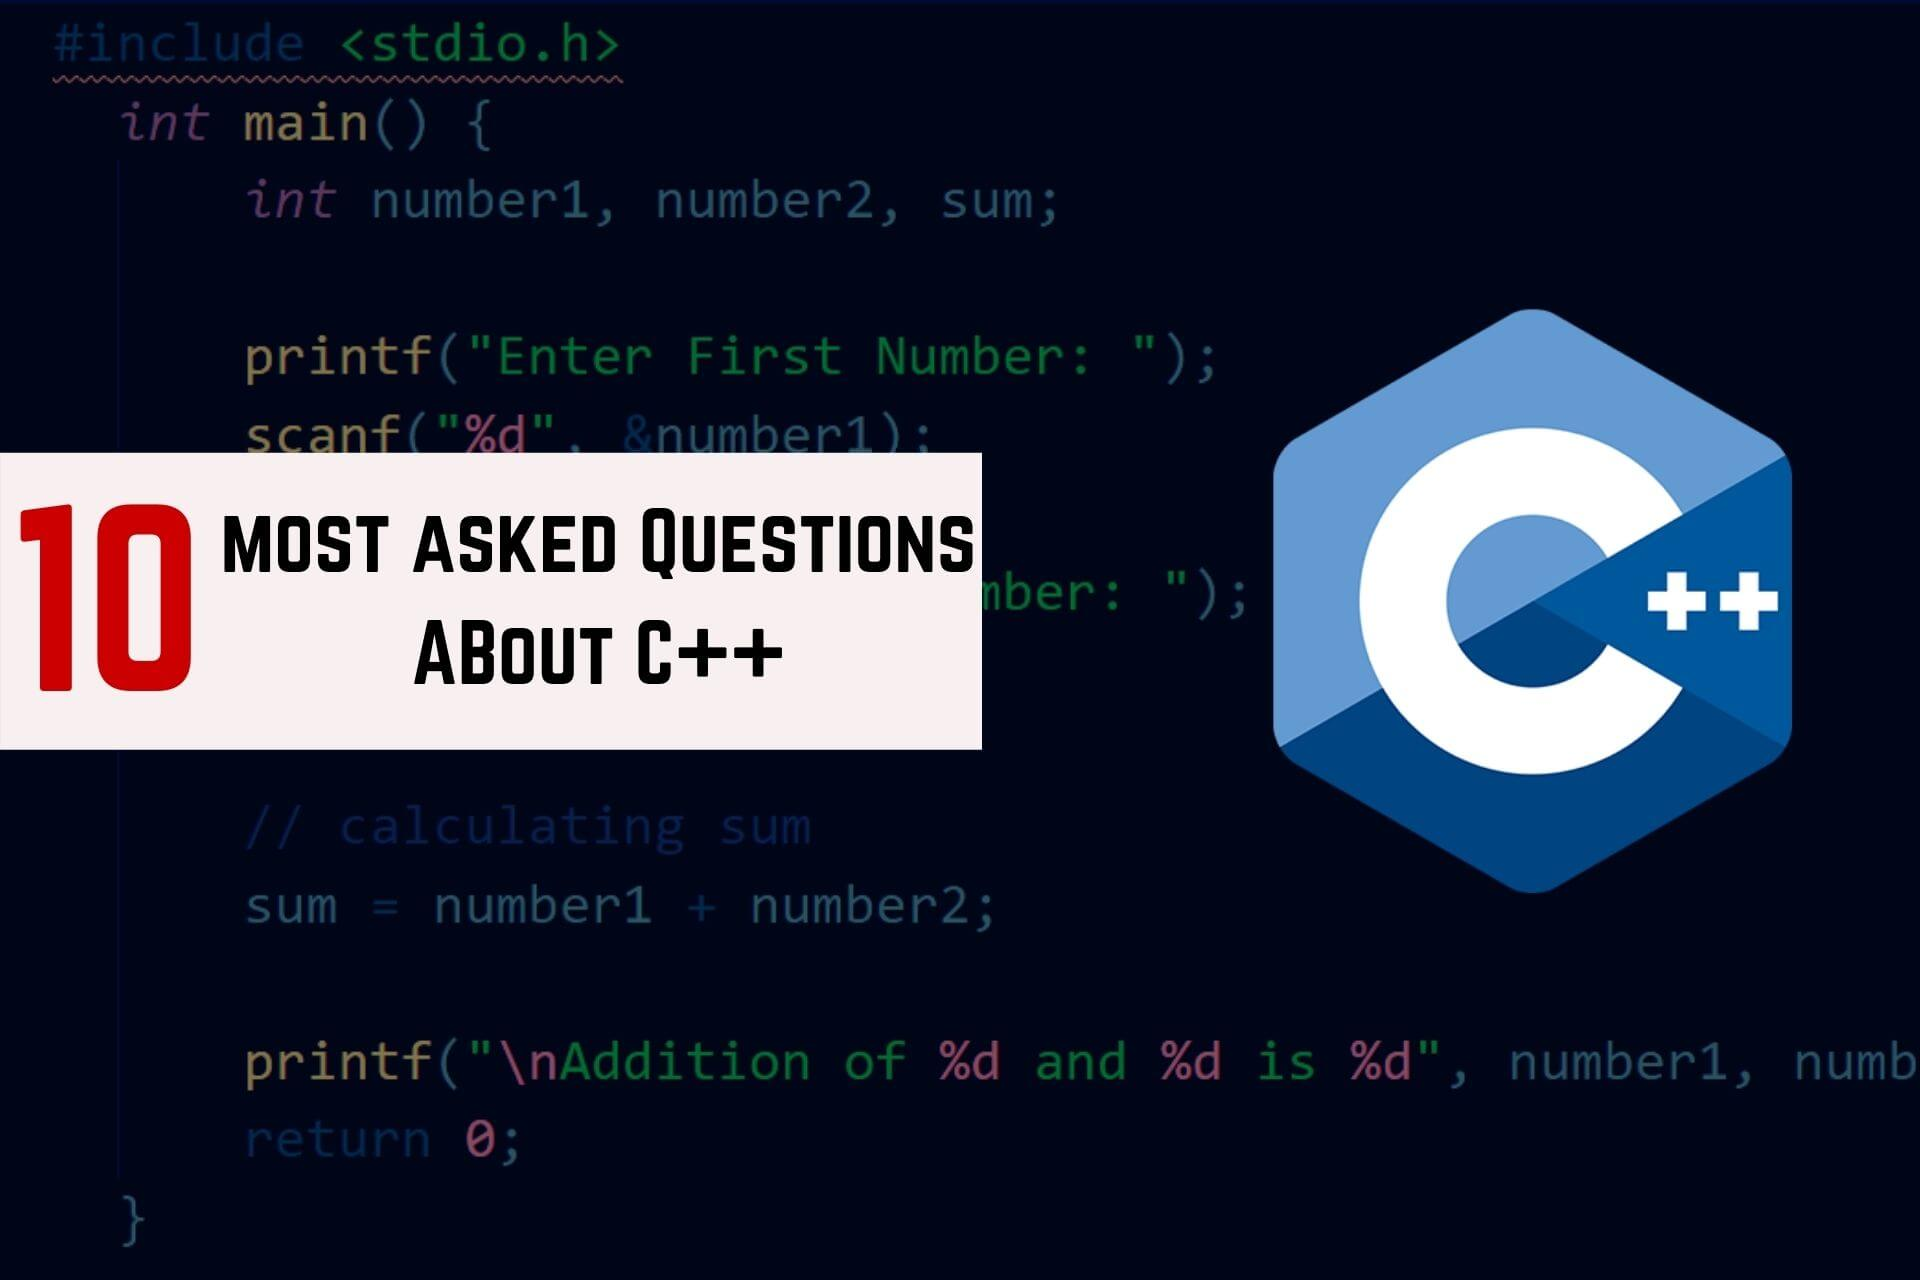 questions about c++